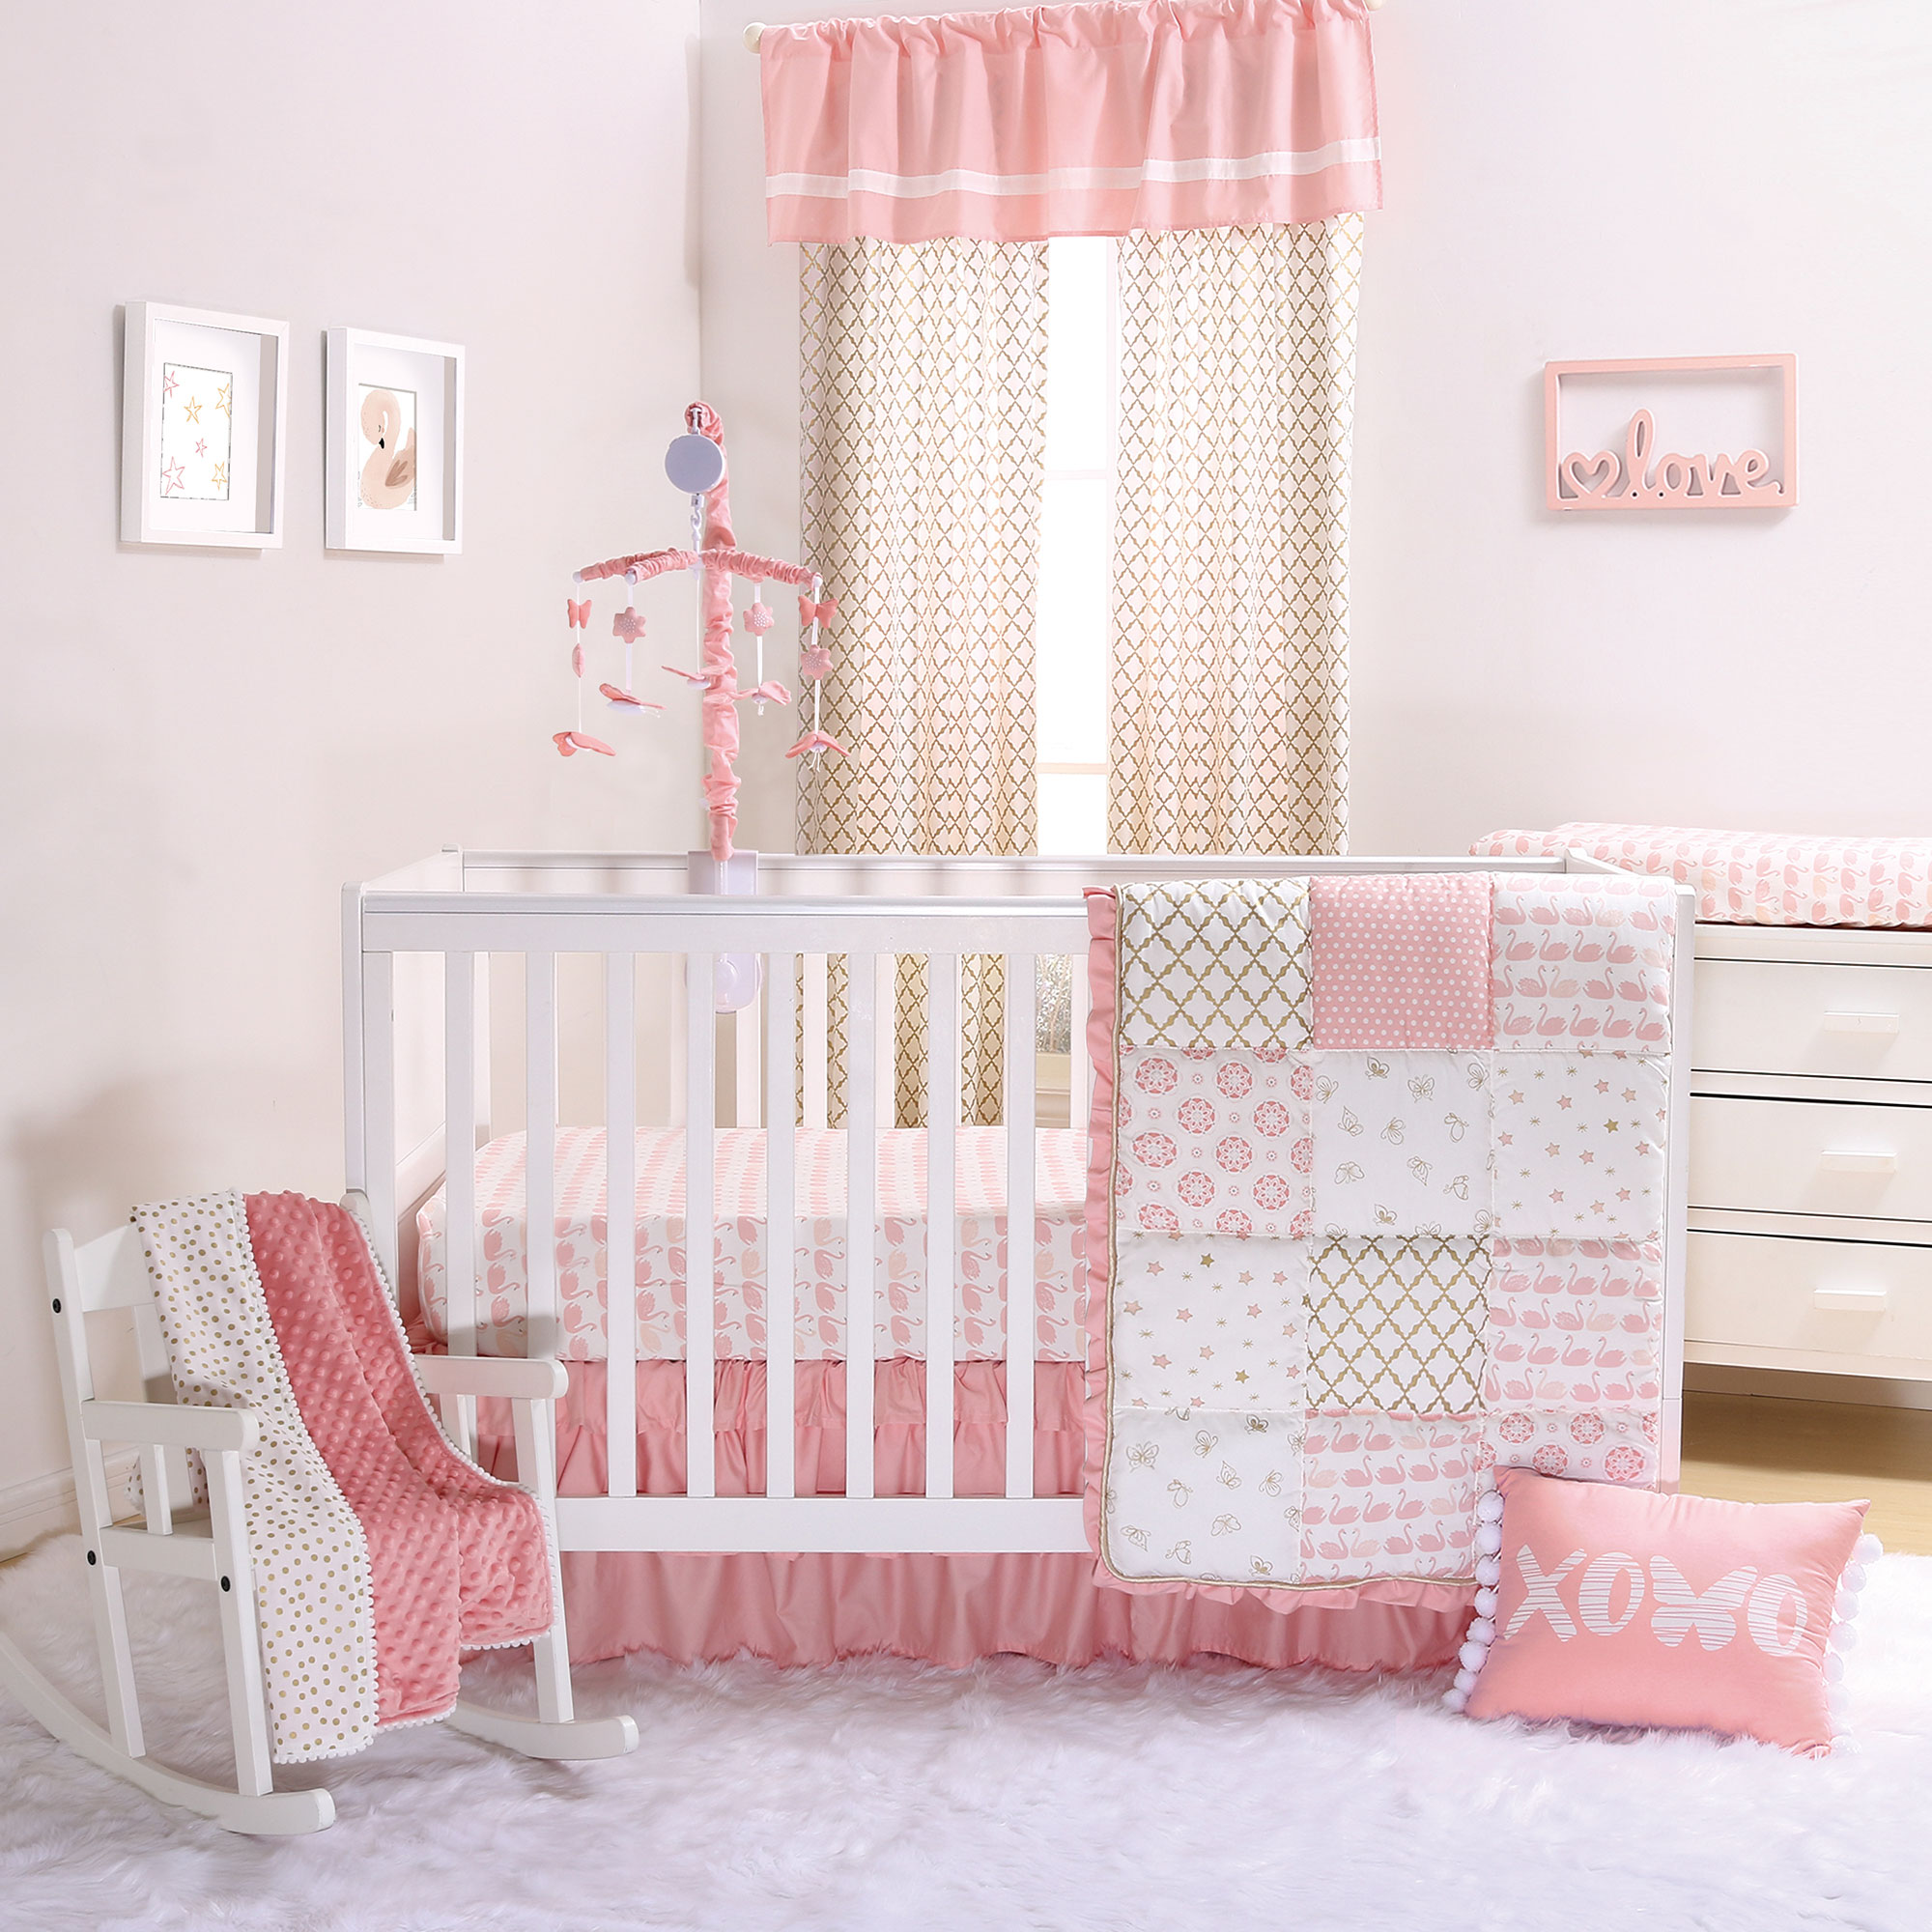 Coral Pink Swan and Gold Trellis 3 Piece Crib Bedding Set by The Peanut Shell